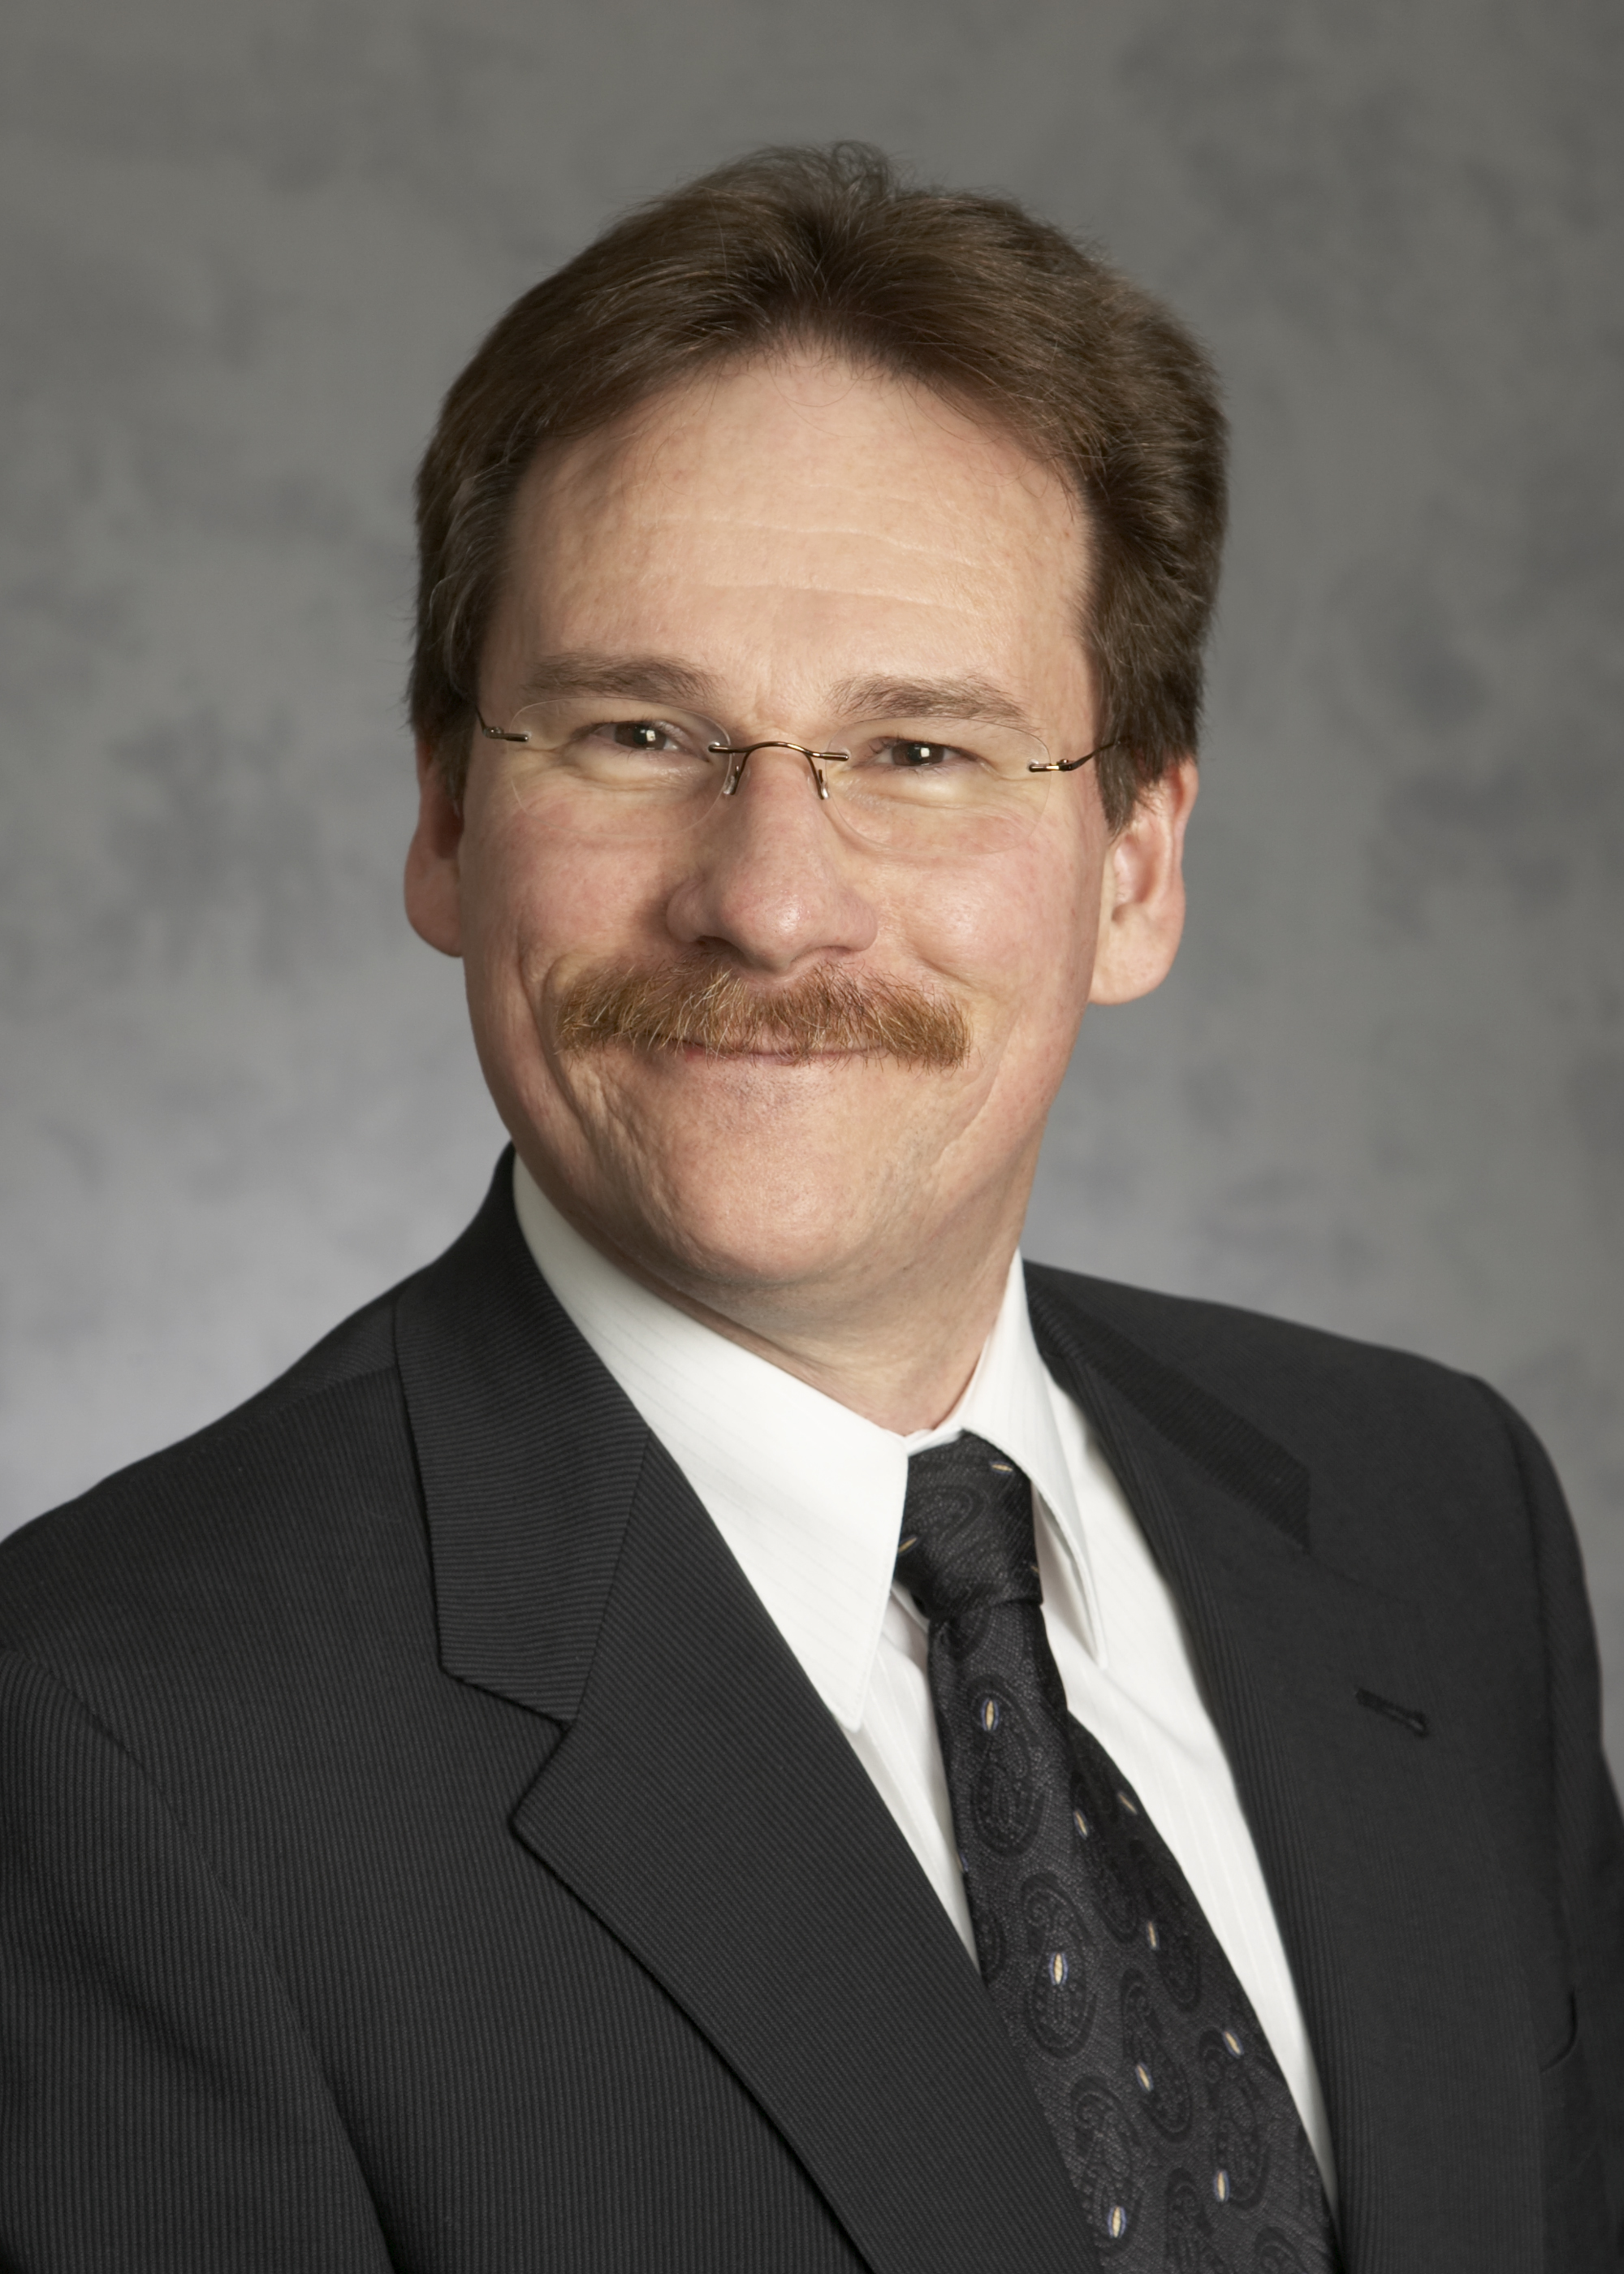 Graeme Bottger has been named Alcoa Executive Vice President and President of Global Business Services. (Photo: Business Wire)